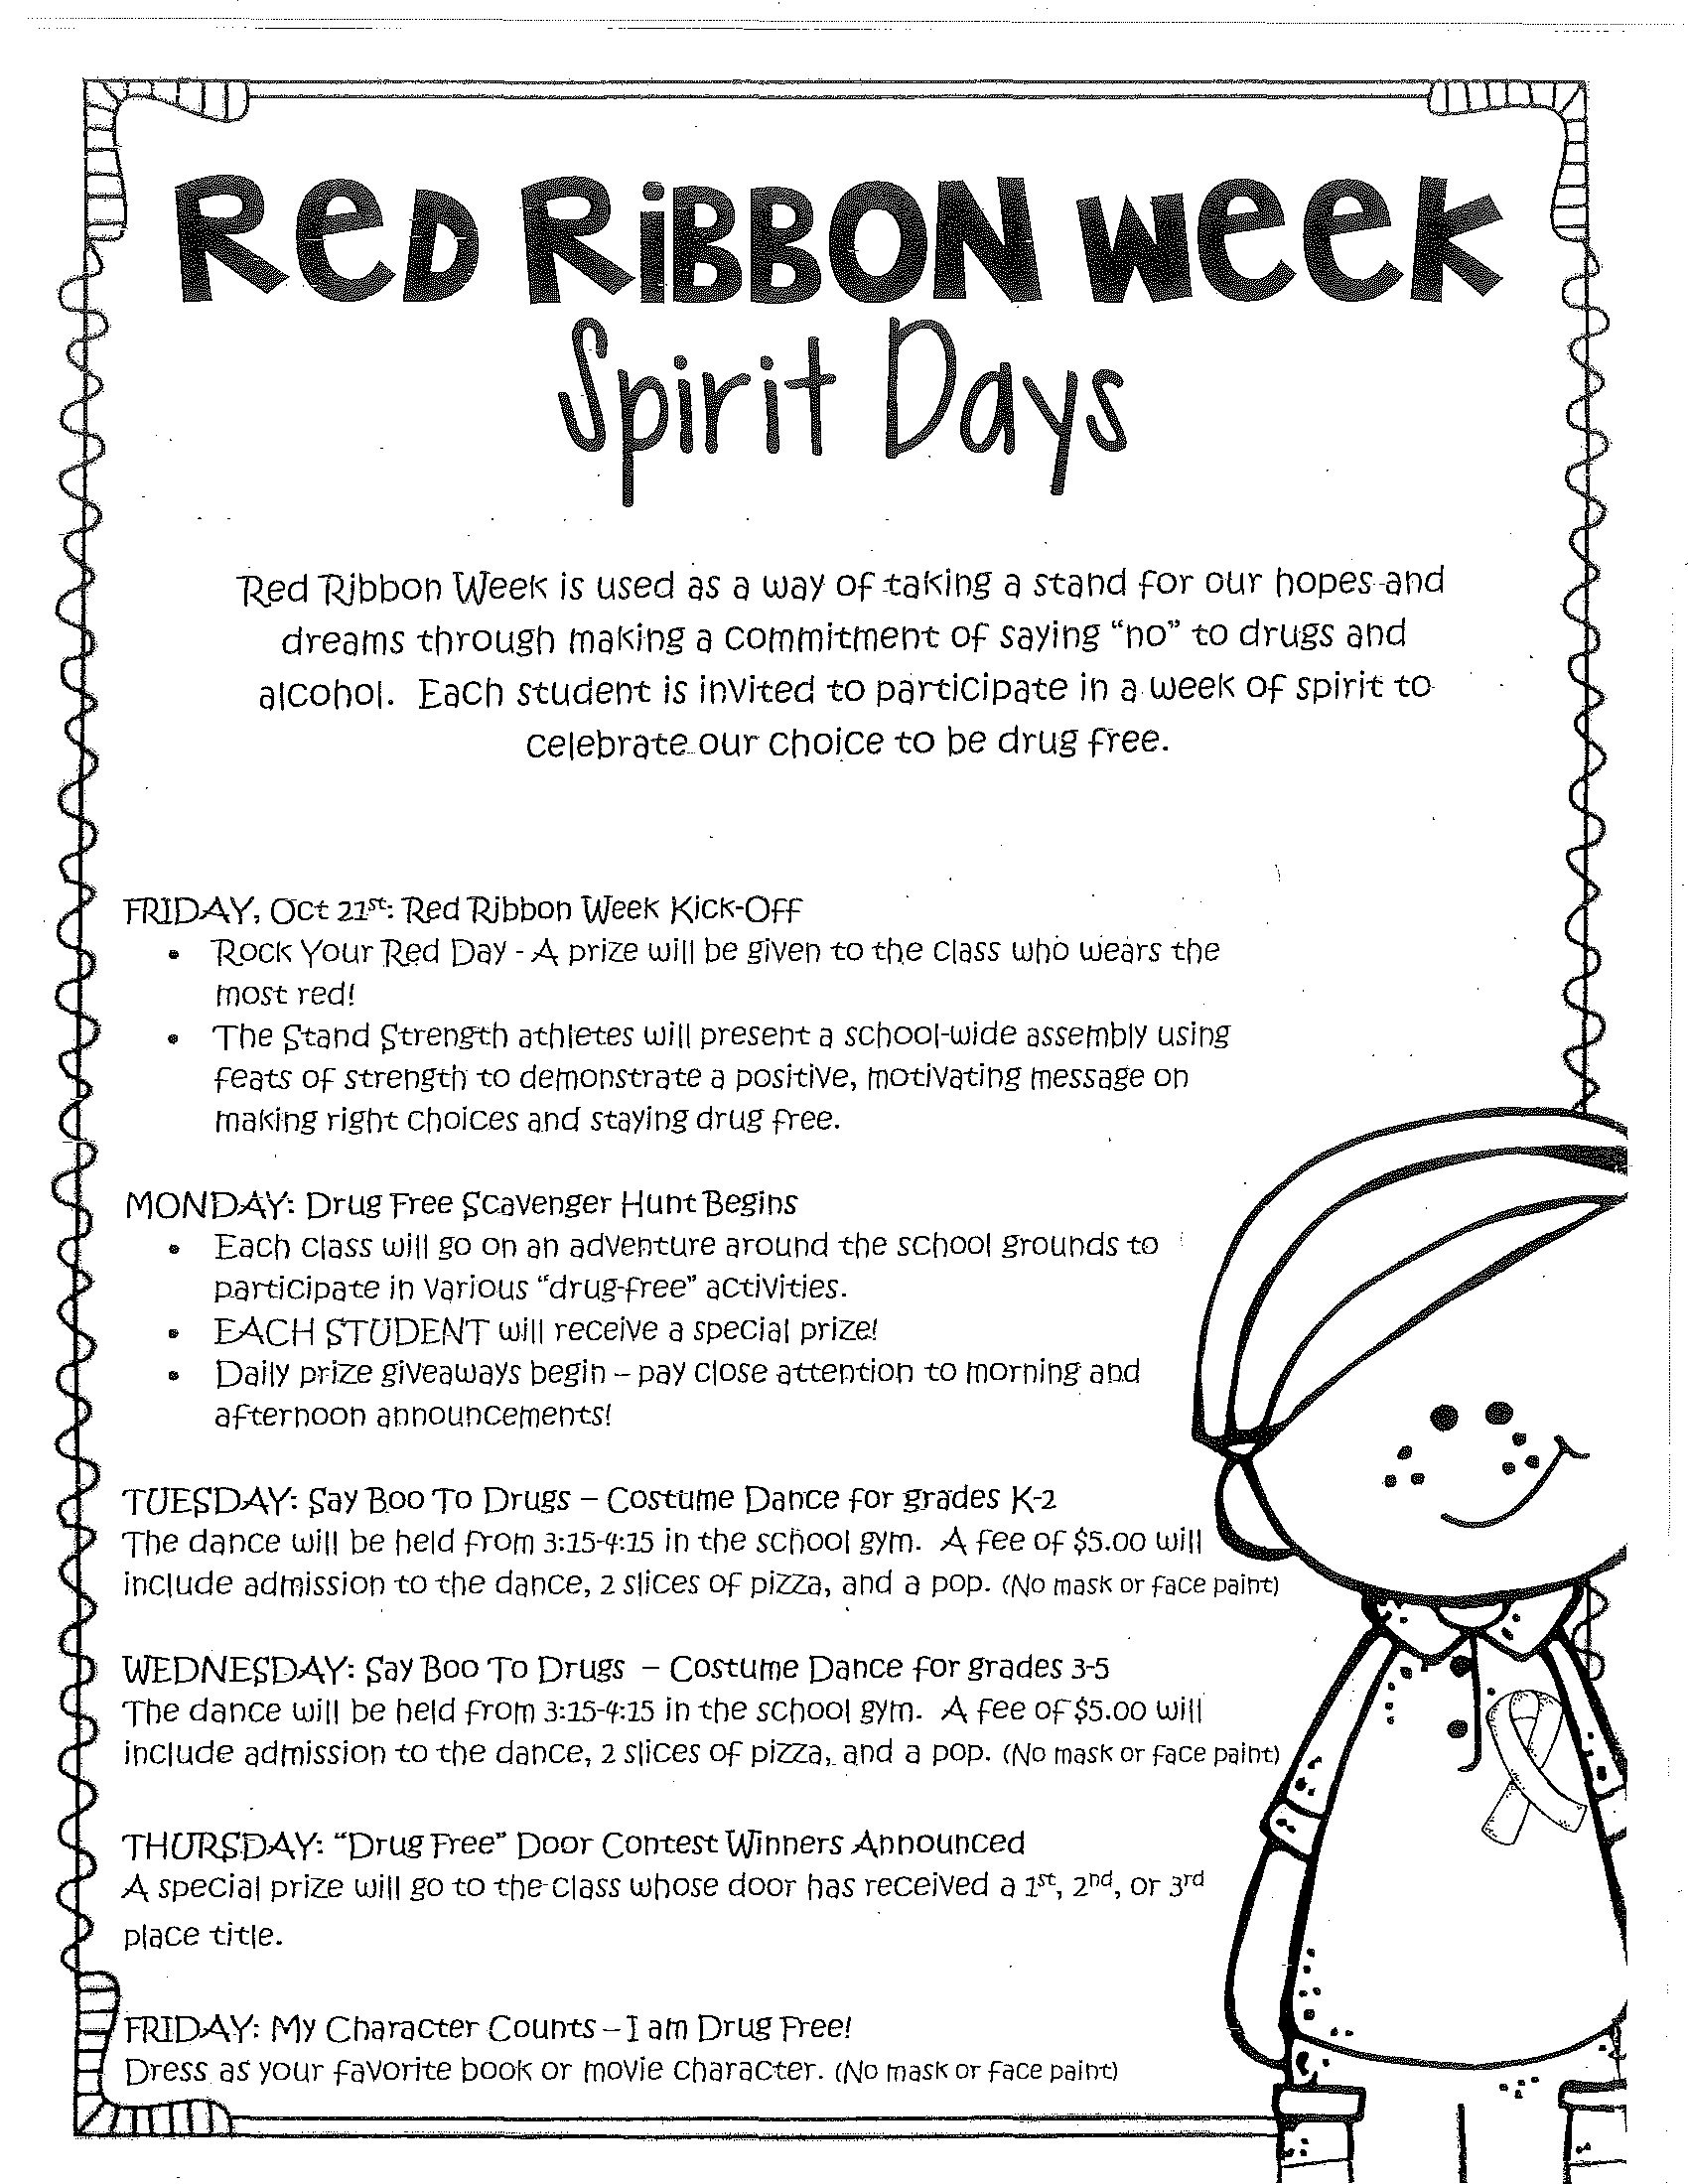 10 Lovable Red Ribbon Week Ideas For Elementary School mves red ribbon week spirit days mt vernon elementary school 2 2020